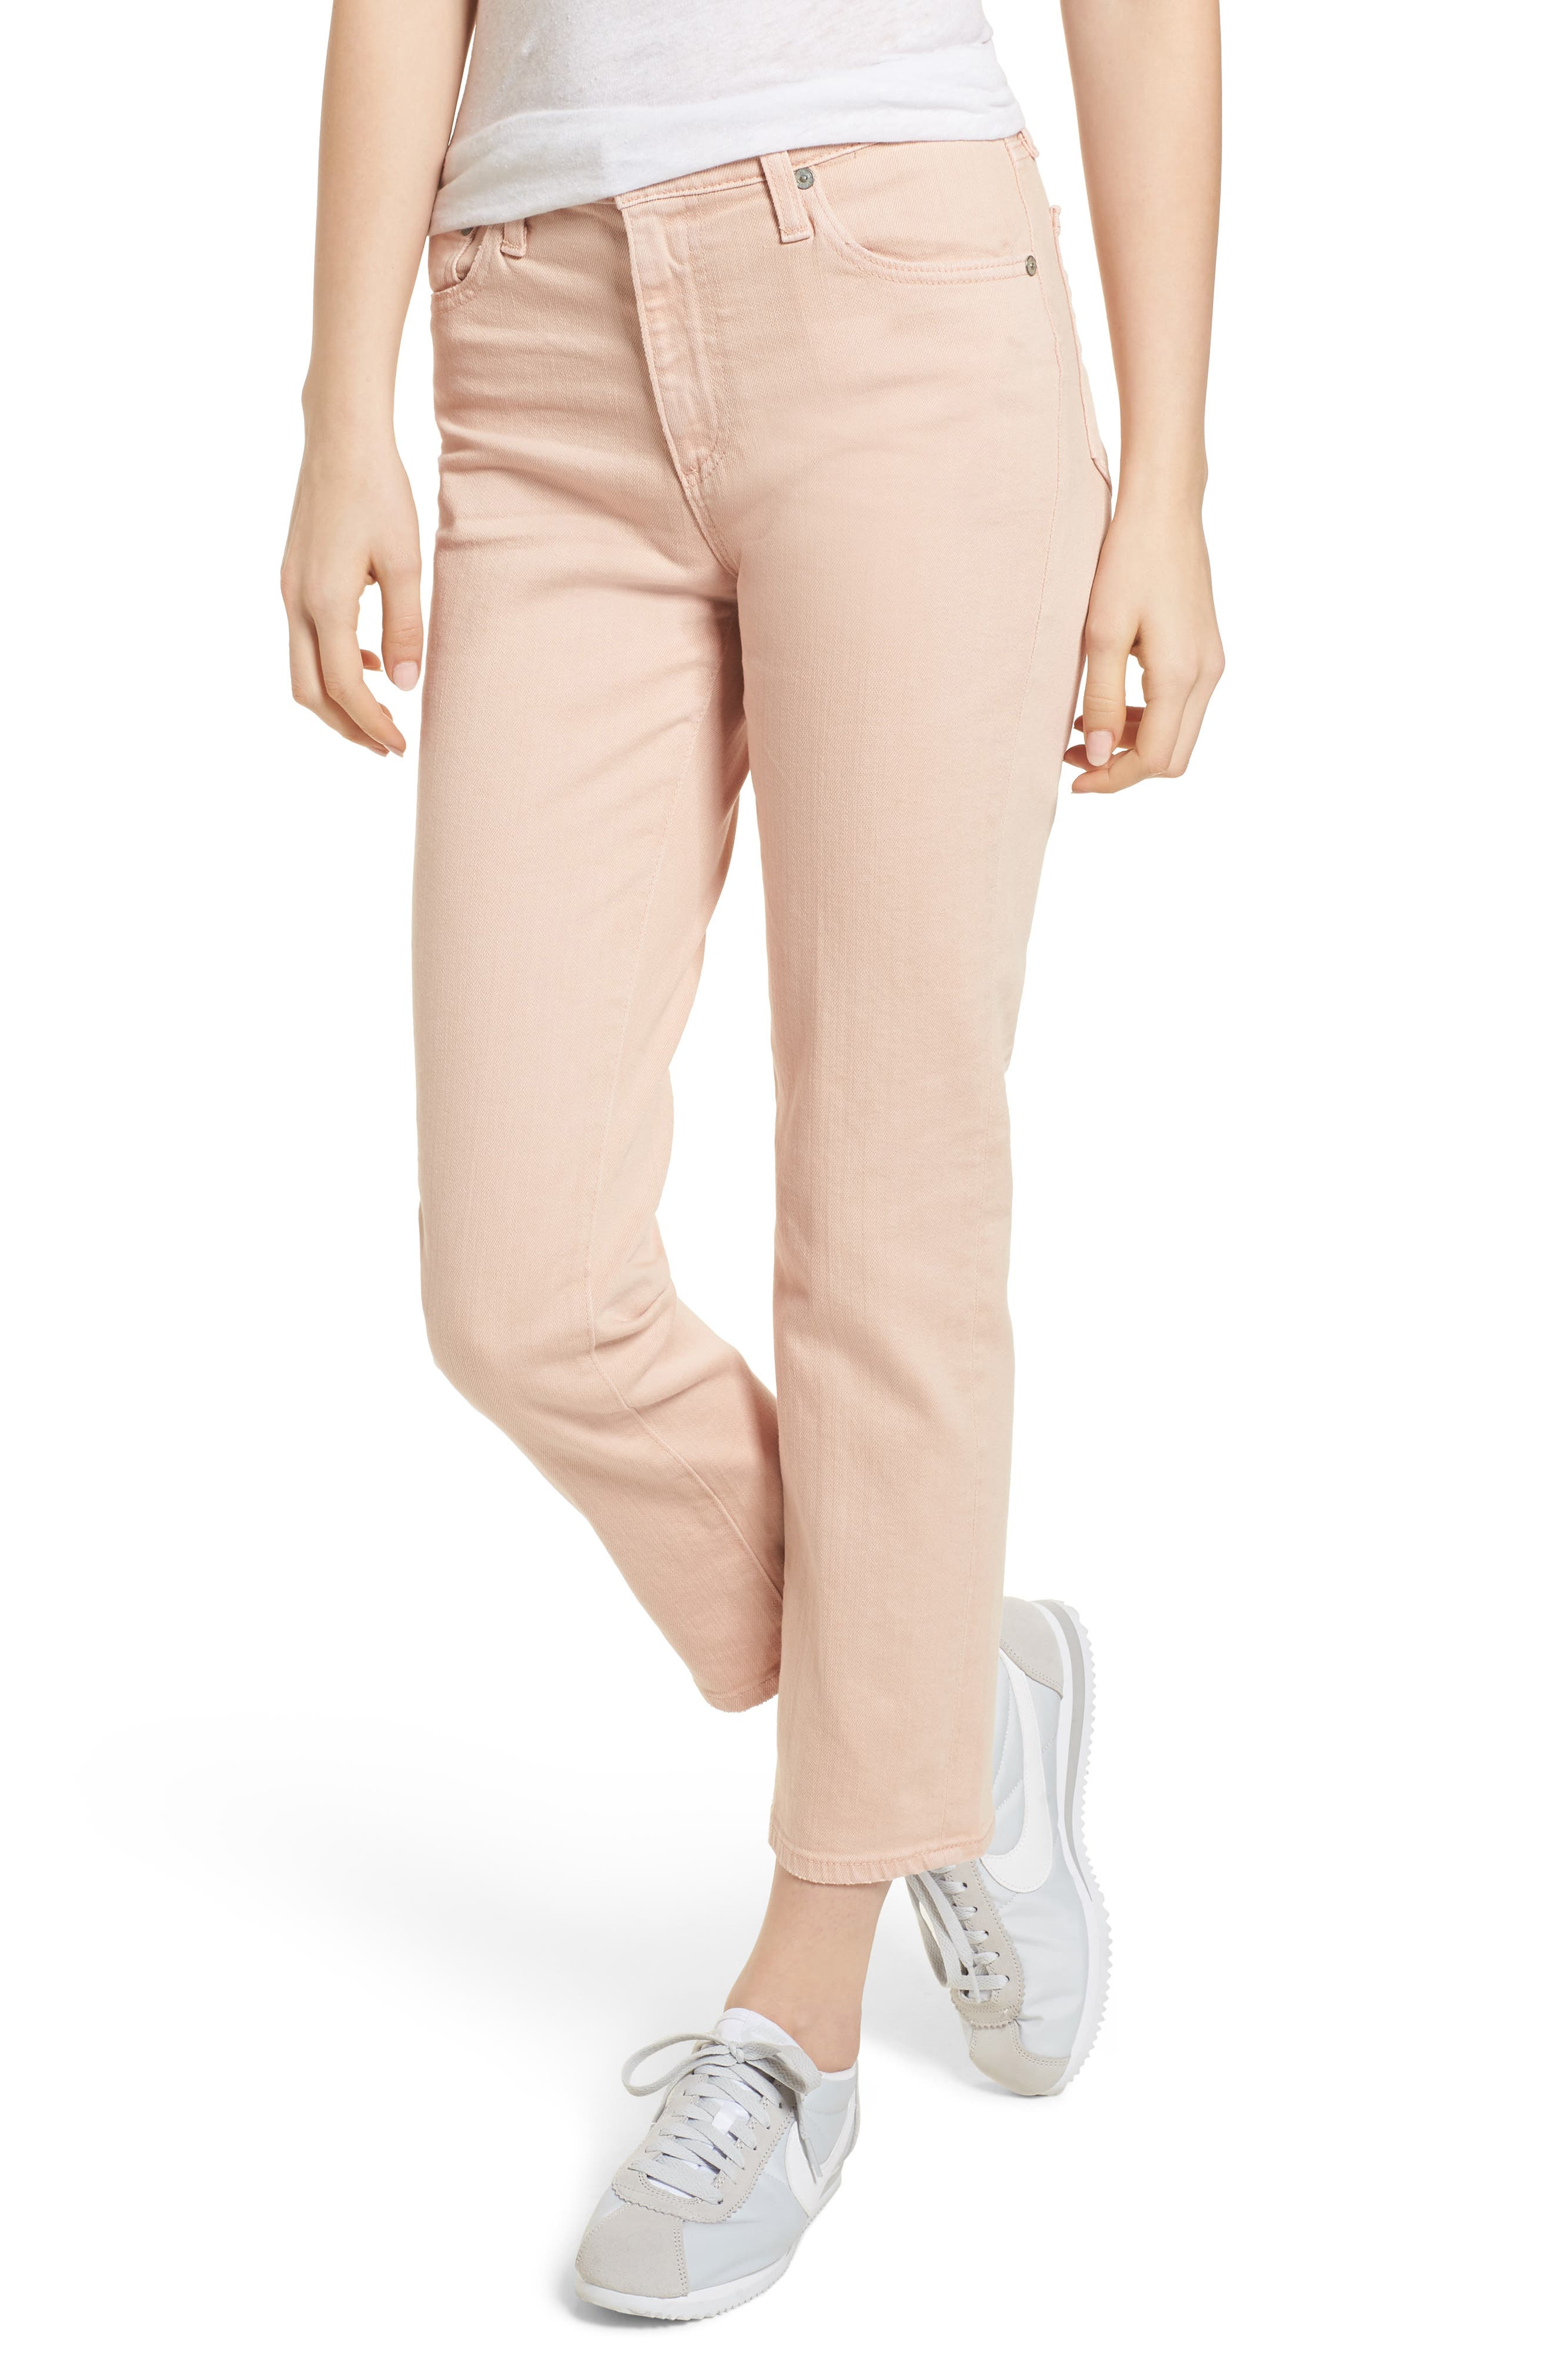 The Isabelle High Waist Crop Straight Leg Jeans,                         Main,                         color, 1 YEAR SULFUR ROSY ROGUE